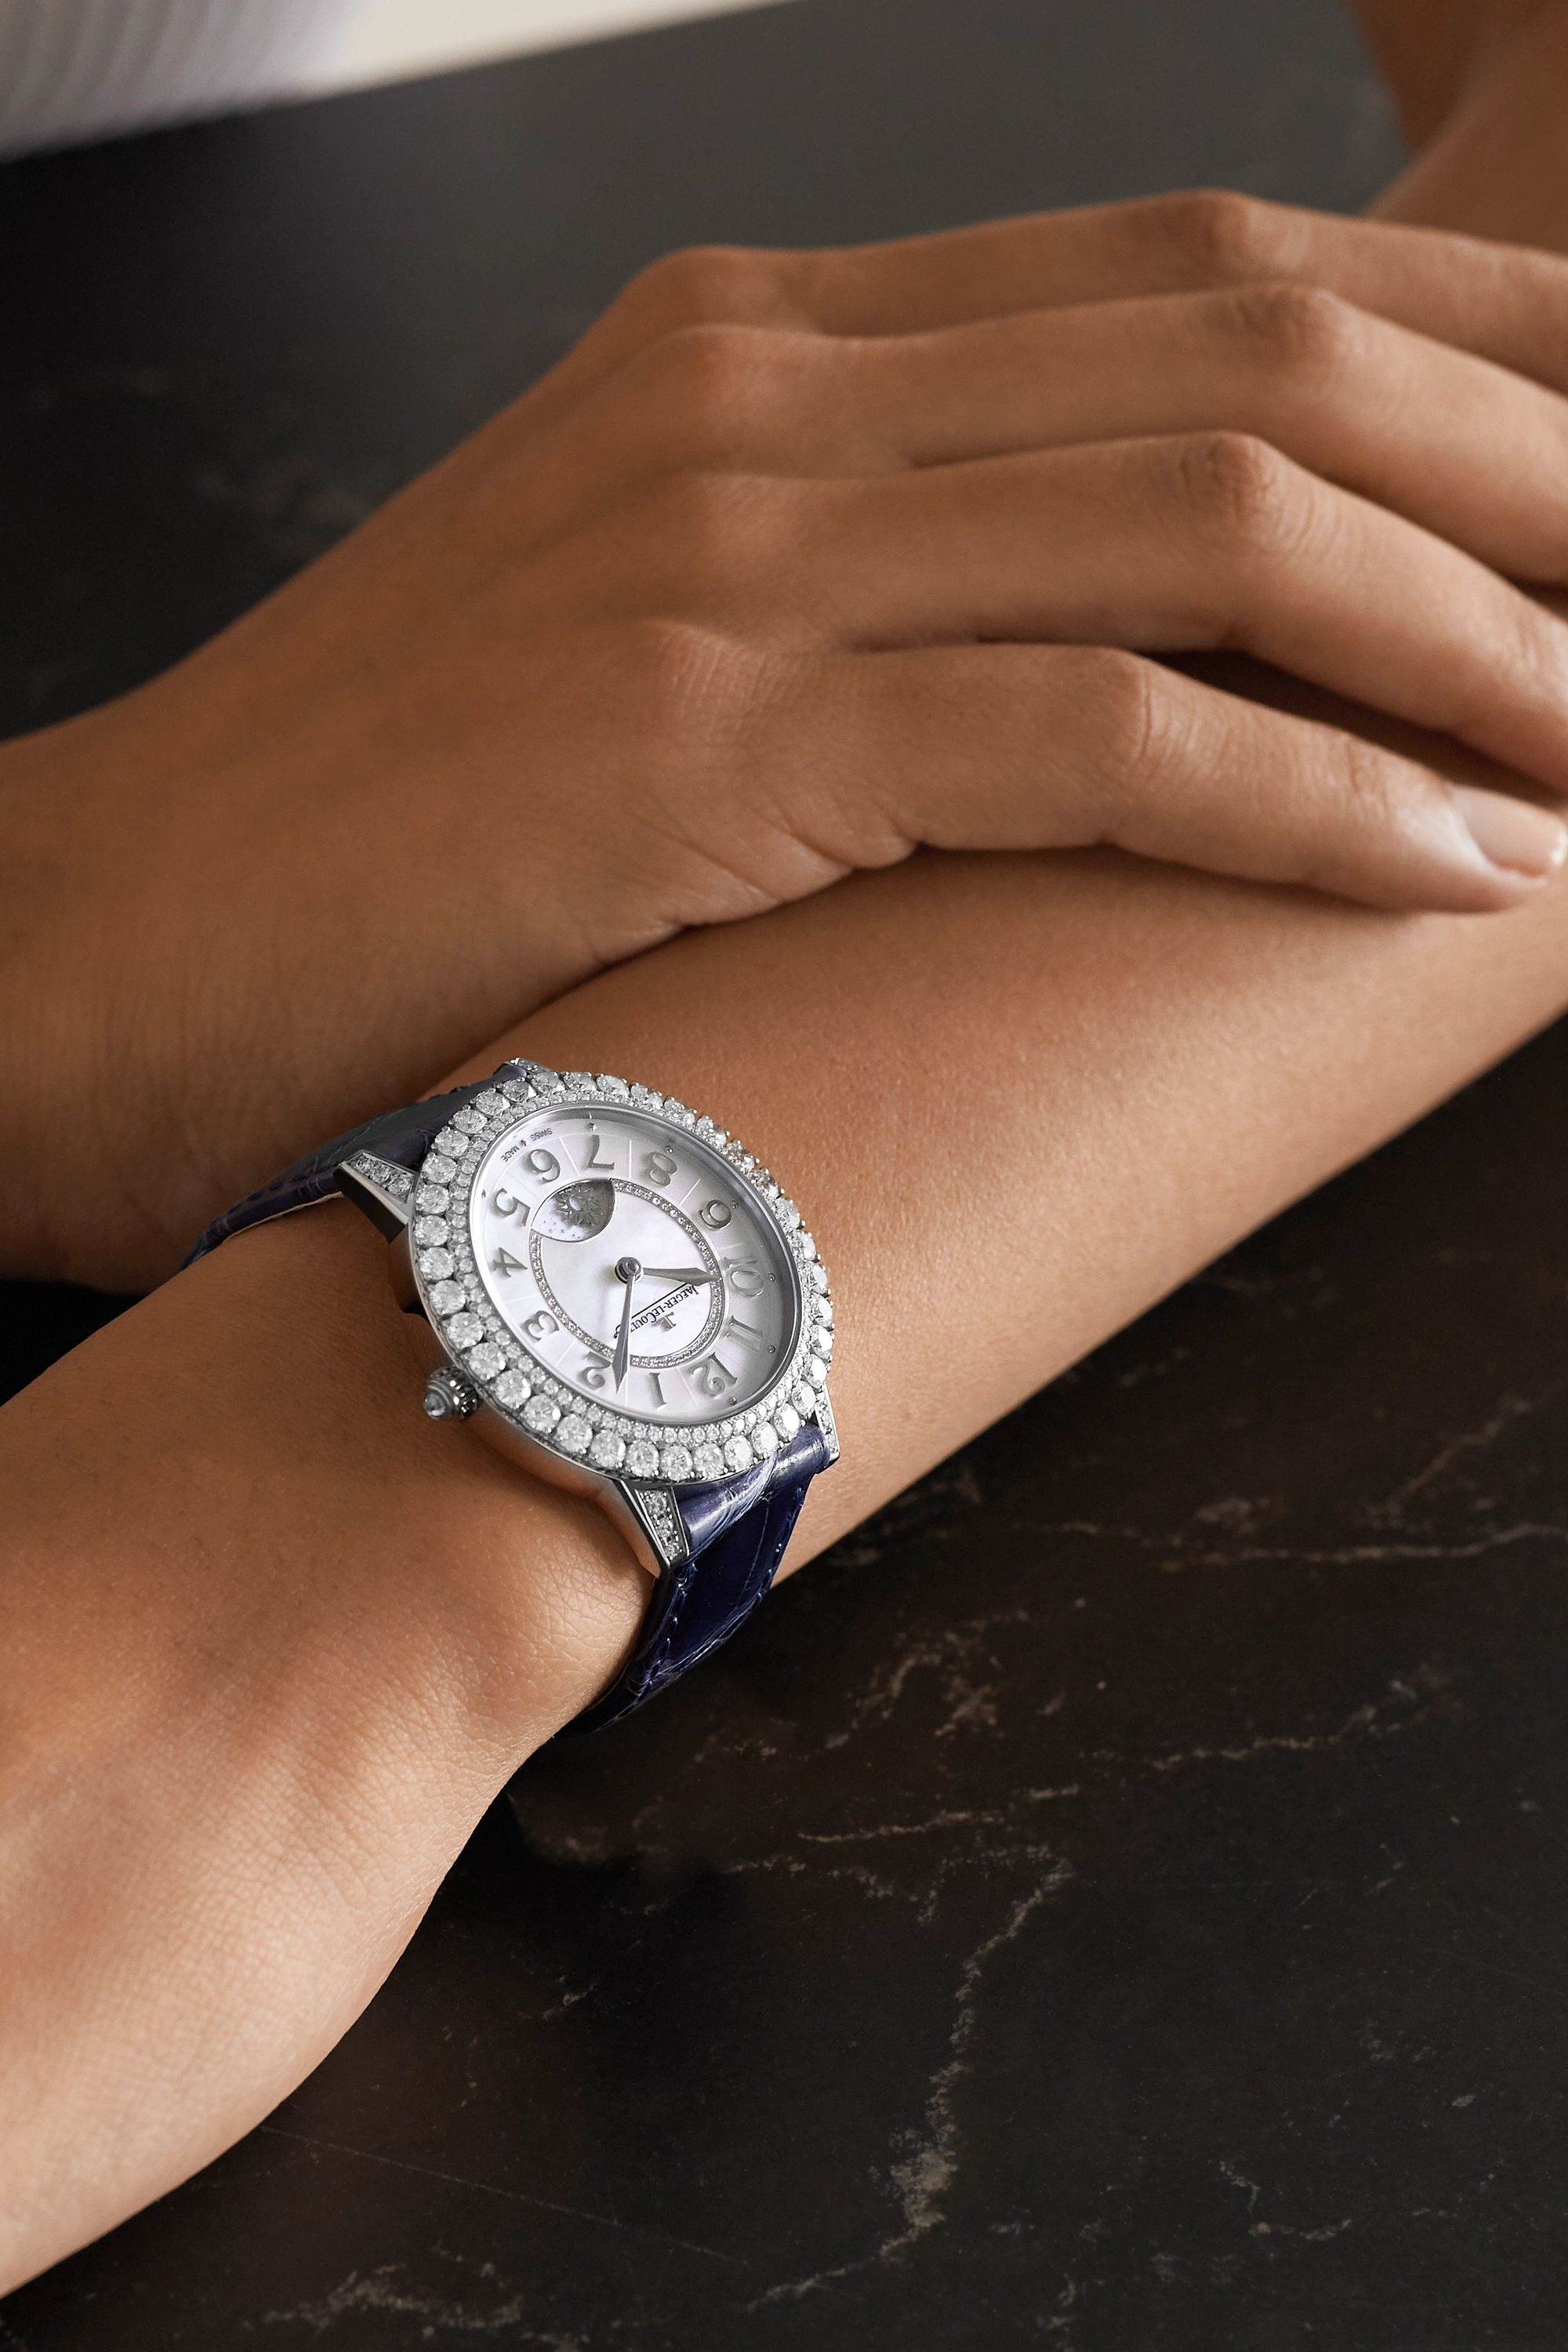 Jaeger-LeCoultre Rendez-Vous Night & Day 36mm 18-karat white gold, mother-of-pearl, diamond and alligator watch